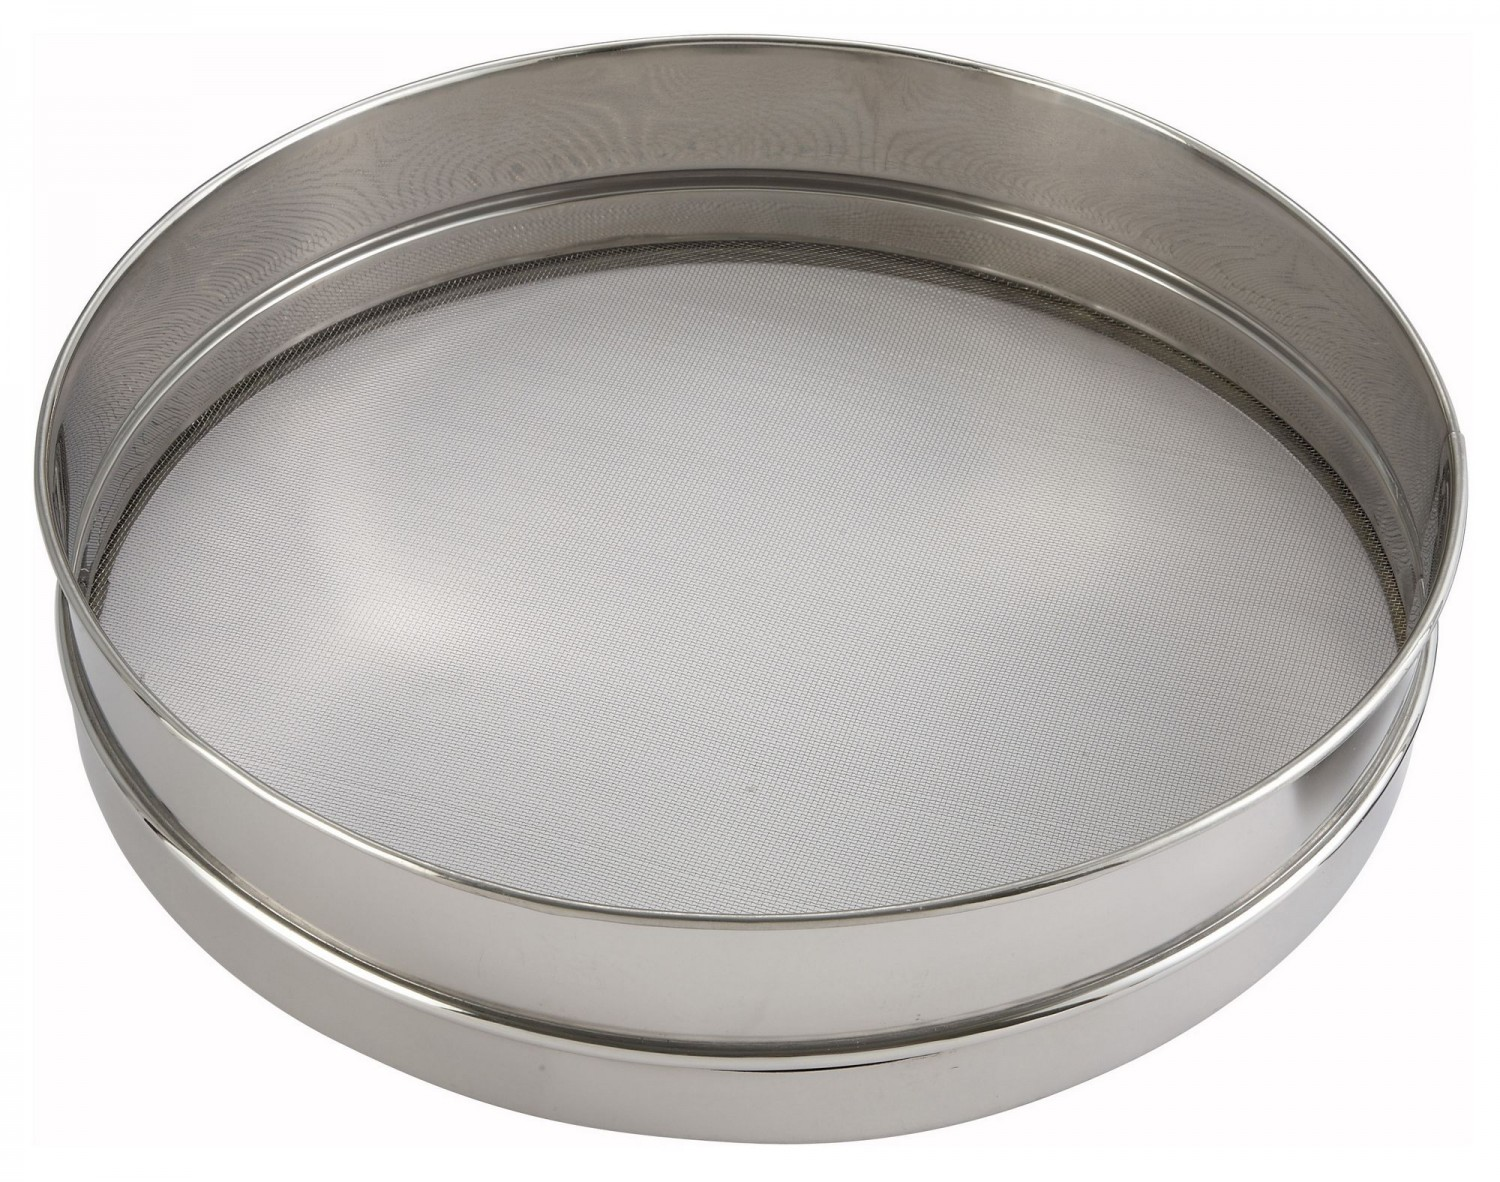 Winco SIV-10 Stainless Steel Mesh Sieve 10""